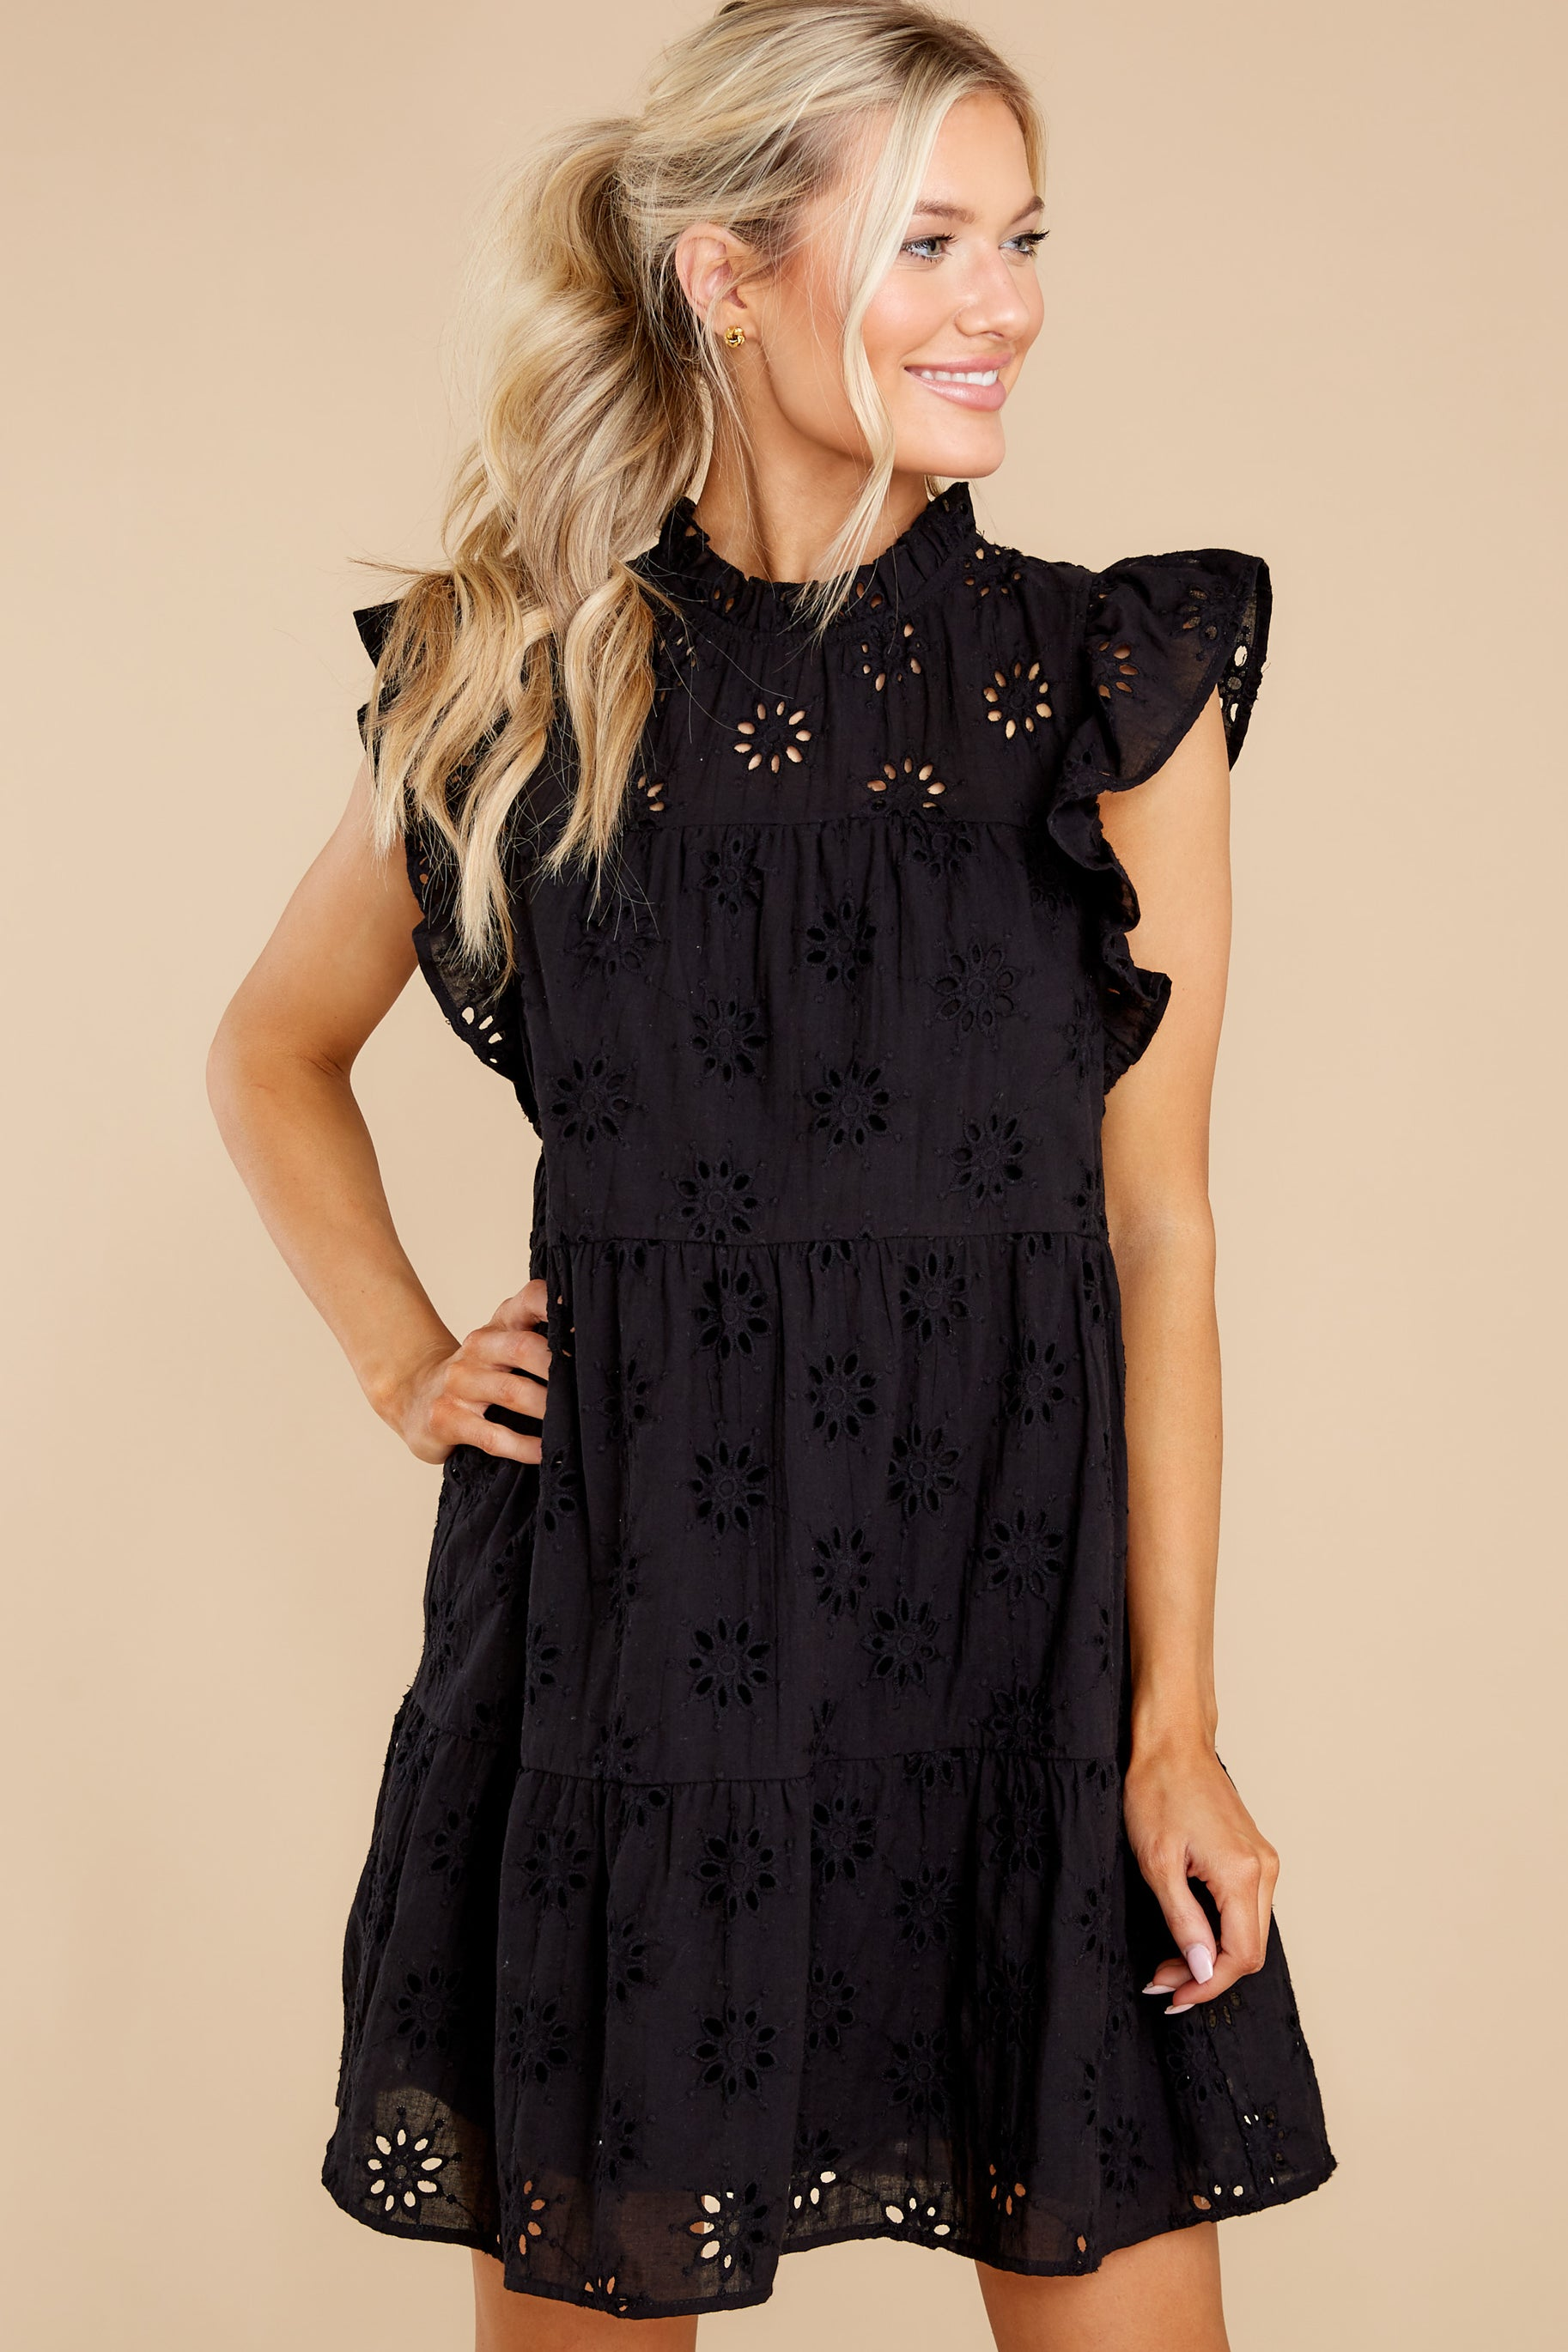 8 So Unreal Black Dress at reddress.com